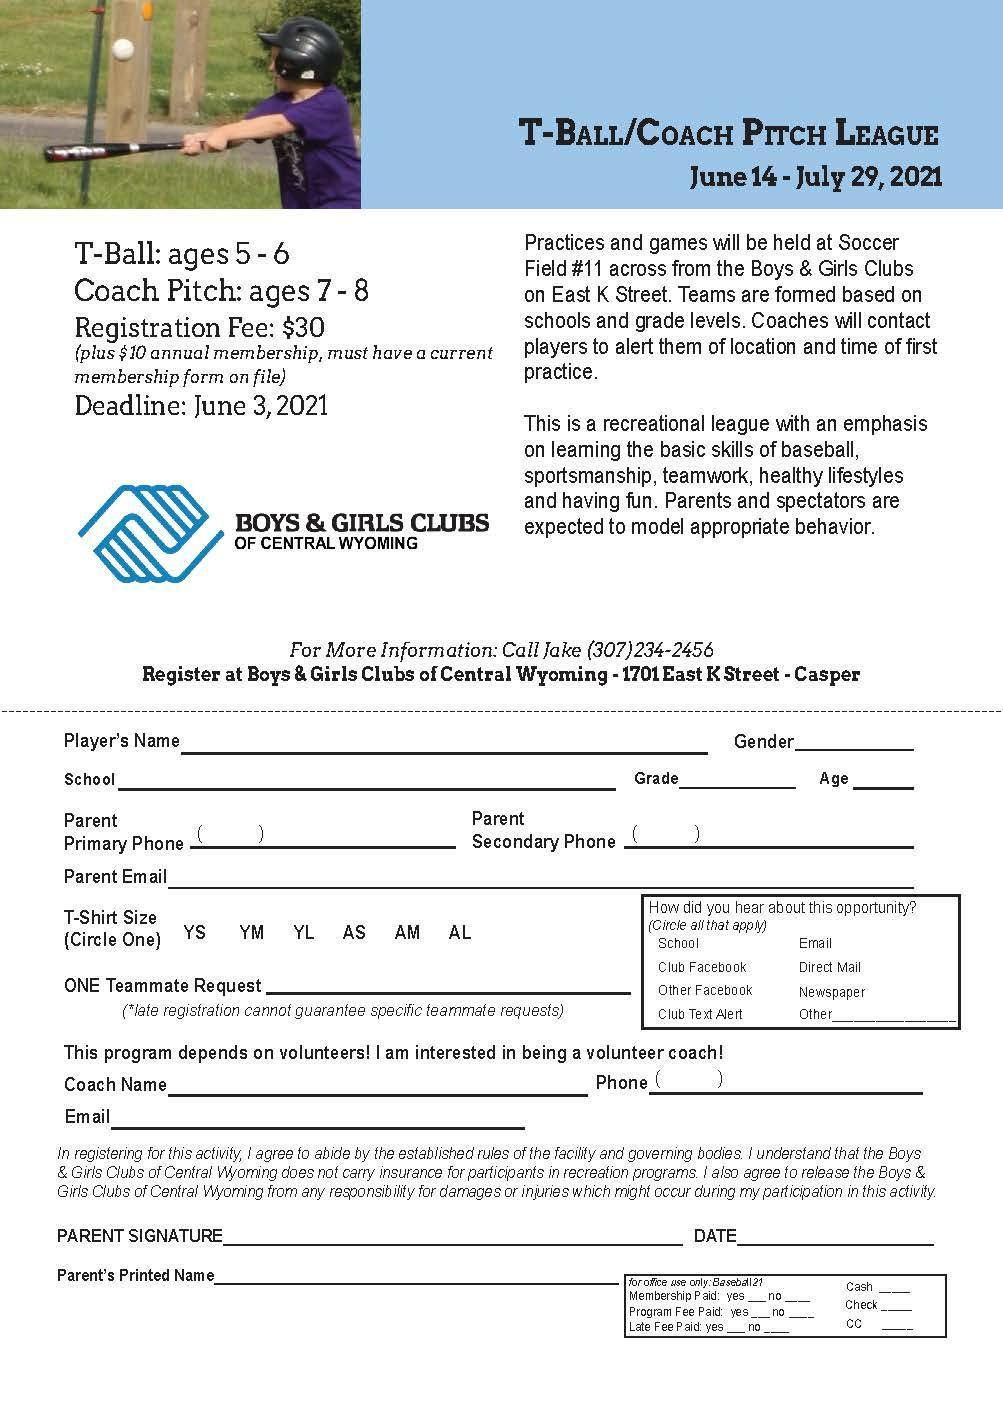 T-ball League Registration flyer